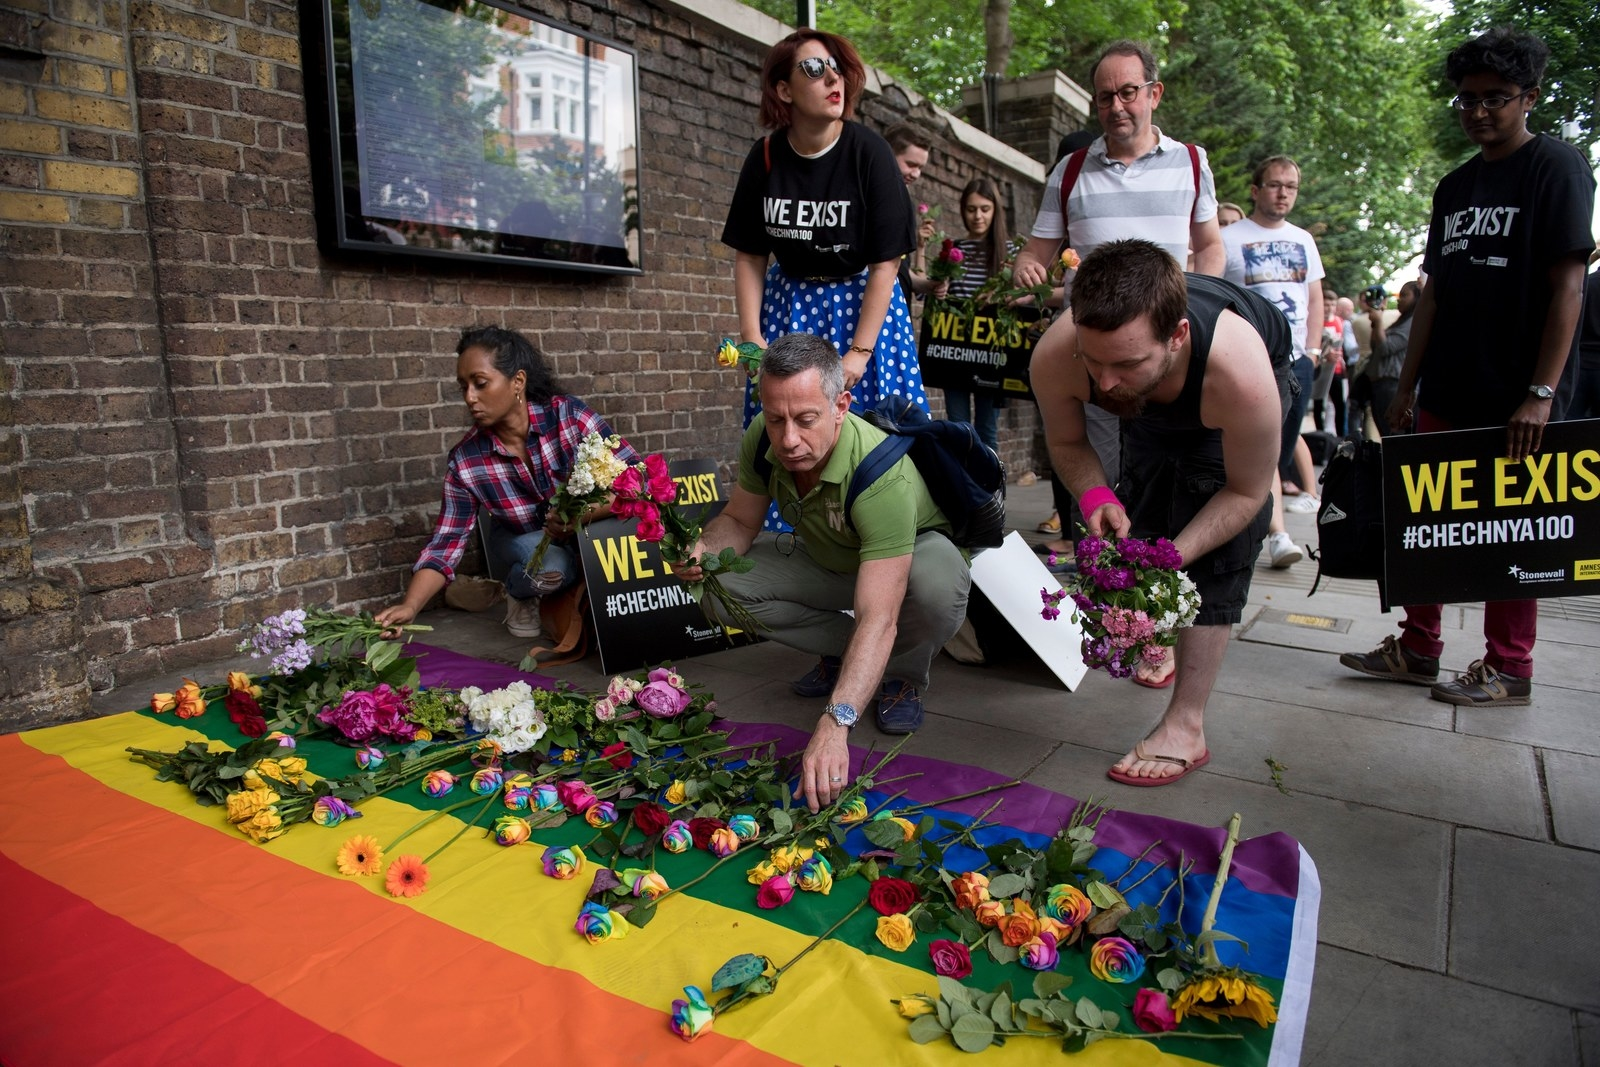 Demonstrators lay roses on a rainbow flag as they protest over a crackdown on gay men in Chechnya outside the Russian Embassy in London on June 2, 2017.